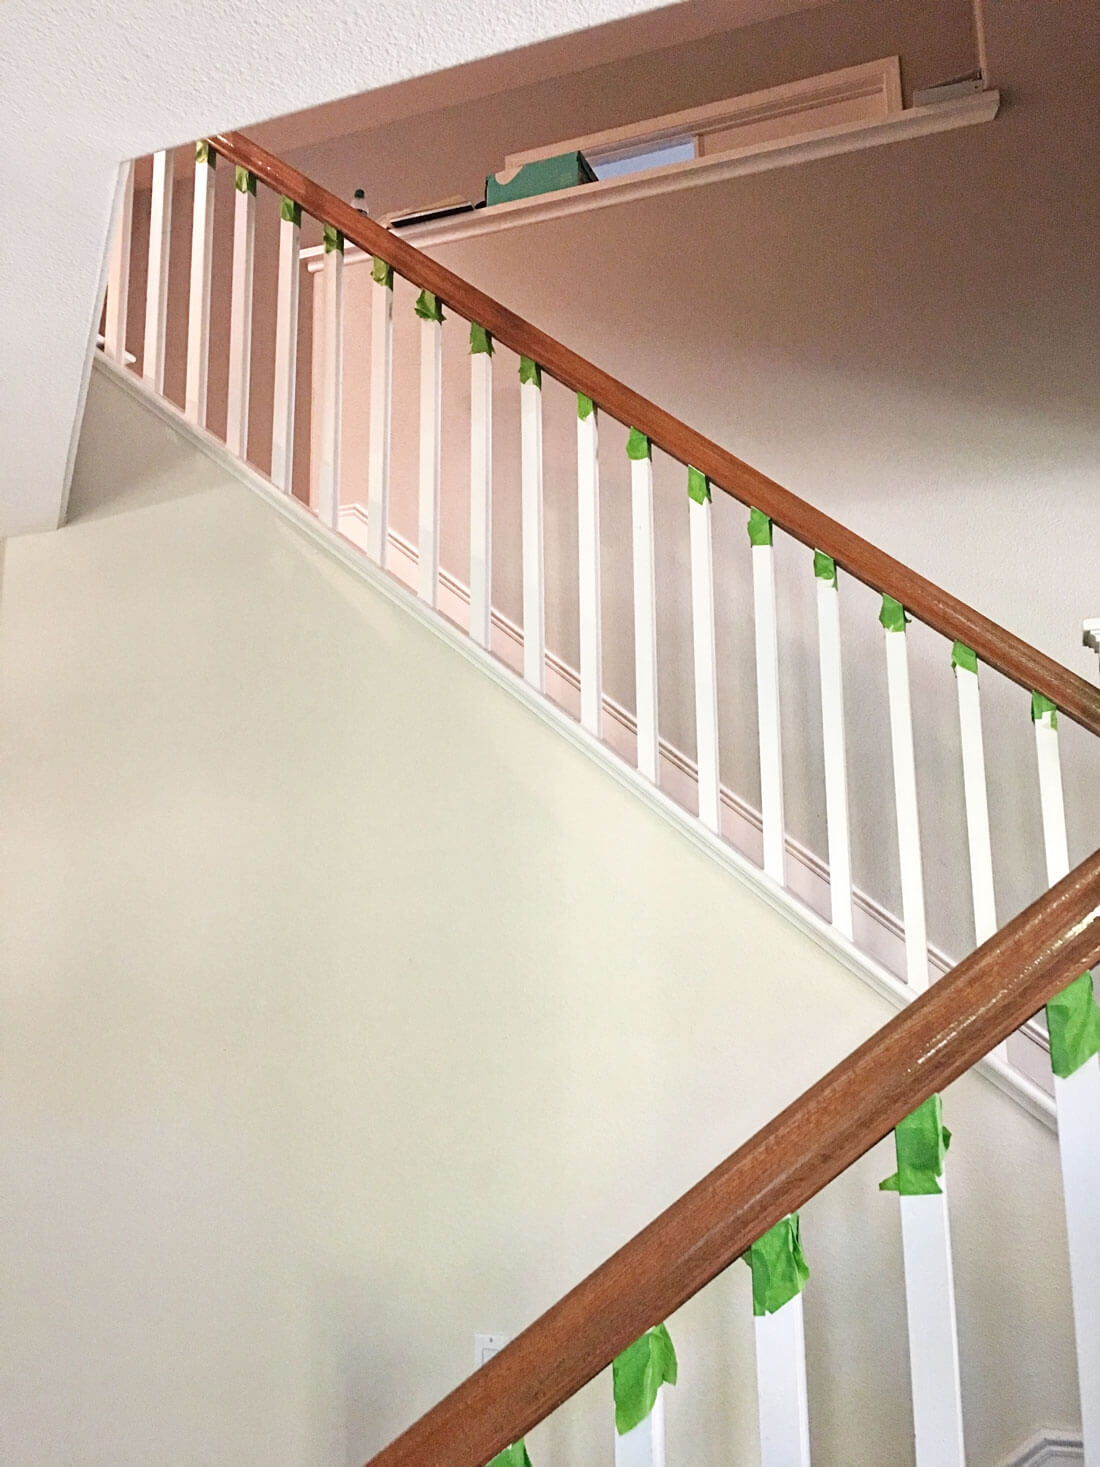 How To Paint Your Stair Railing And Banister Black From 30Daysblog   Wood Stairs And Railings   New   Stairway   Architectural Modern Wood Stair   Color   Basement